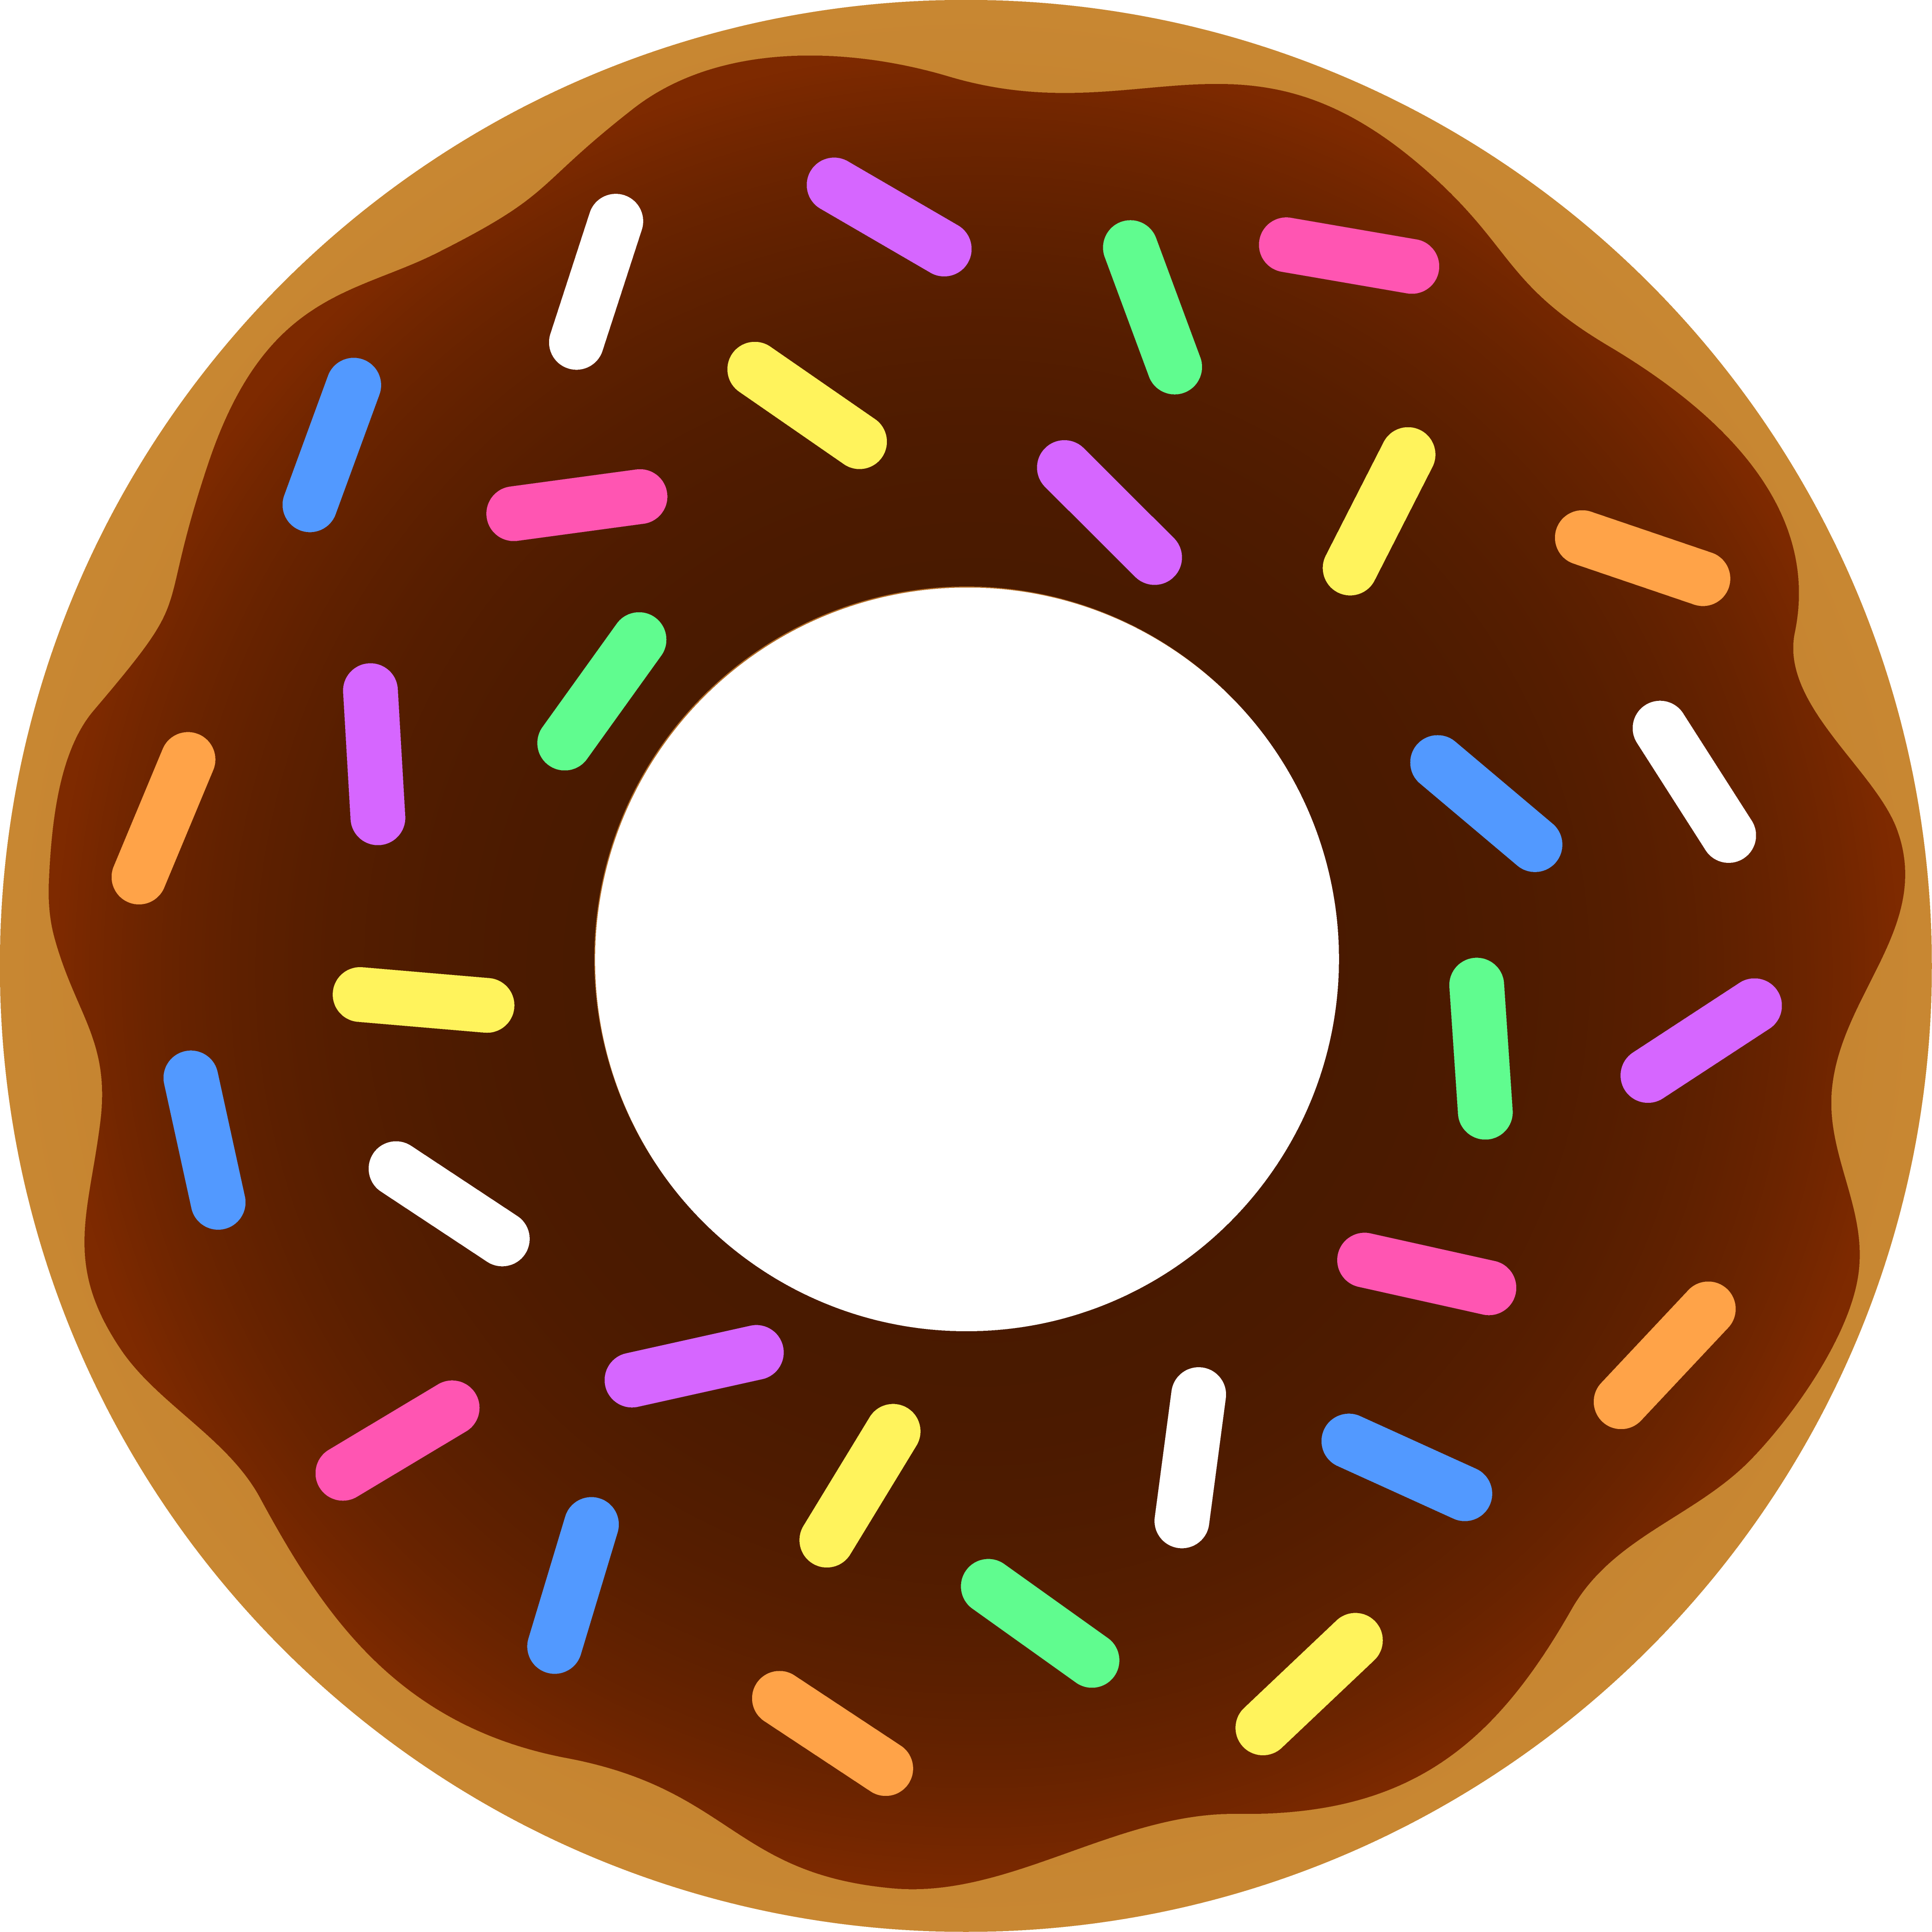 Dunkin donuts coffee and. Donut clipart clear background